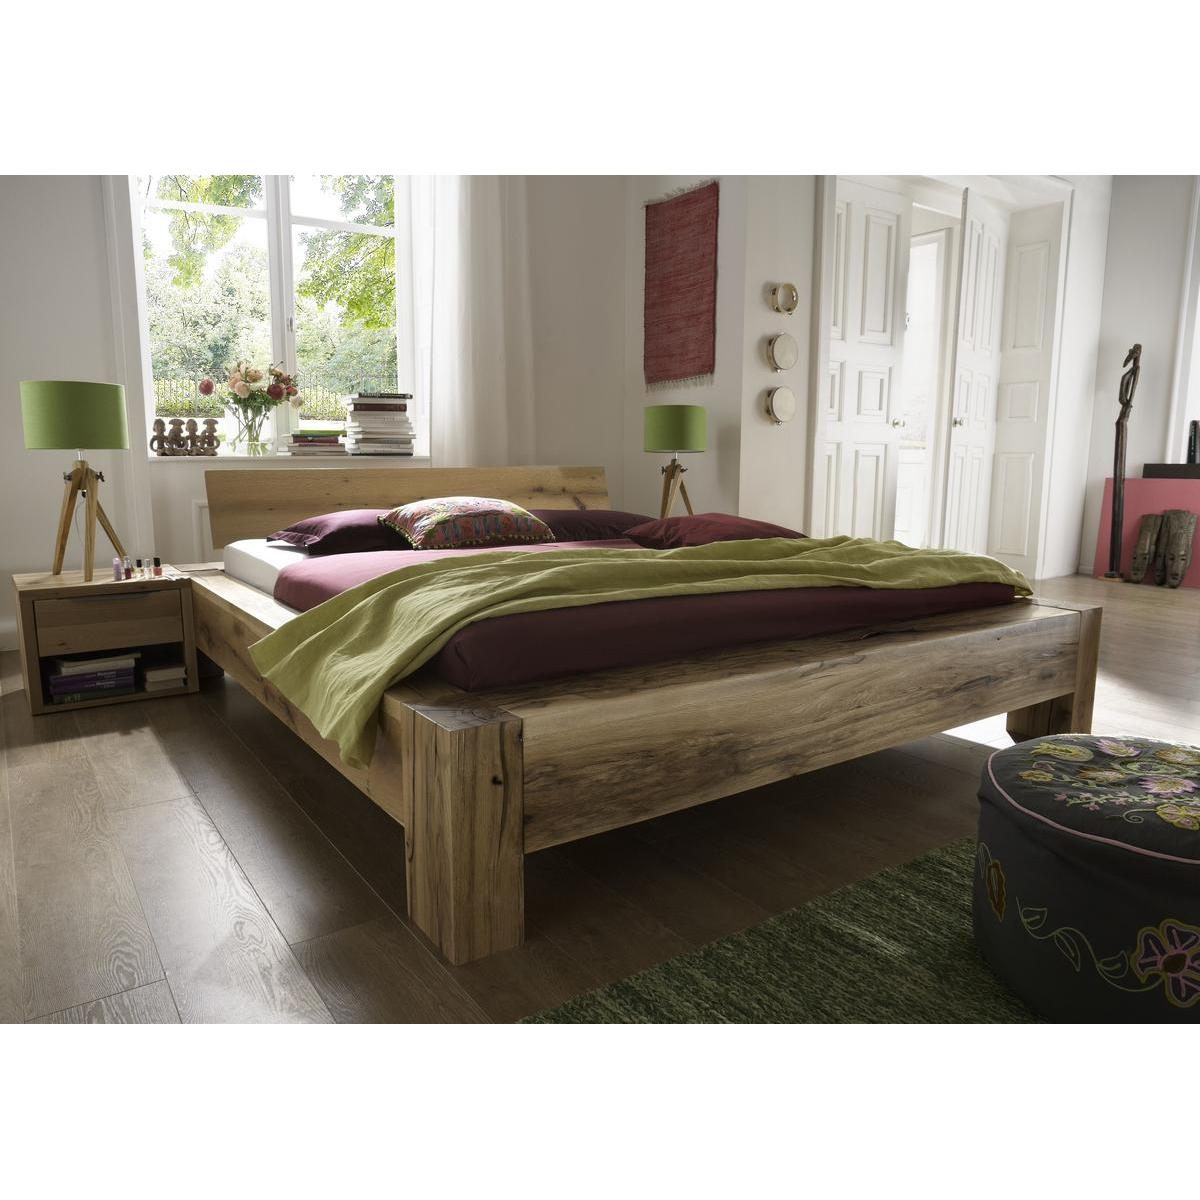 vollholz balkenbett 180x200 heavy sleep alba wildeiche massiv natur ge lt 2218 26 2120 3. Black Bedroom Furniture Sets. Home Design Ideas